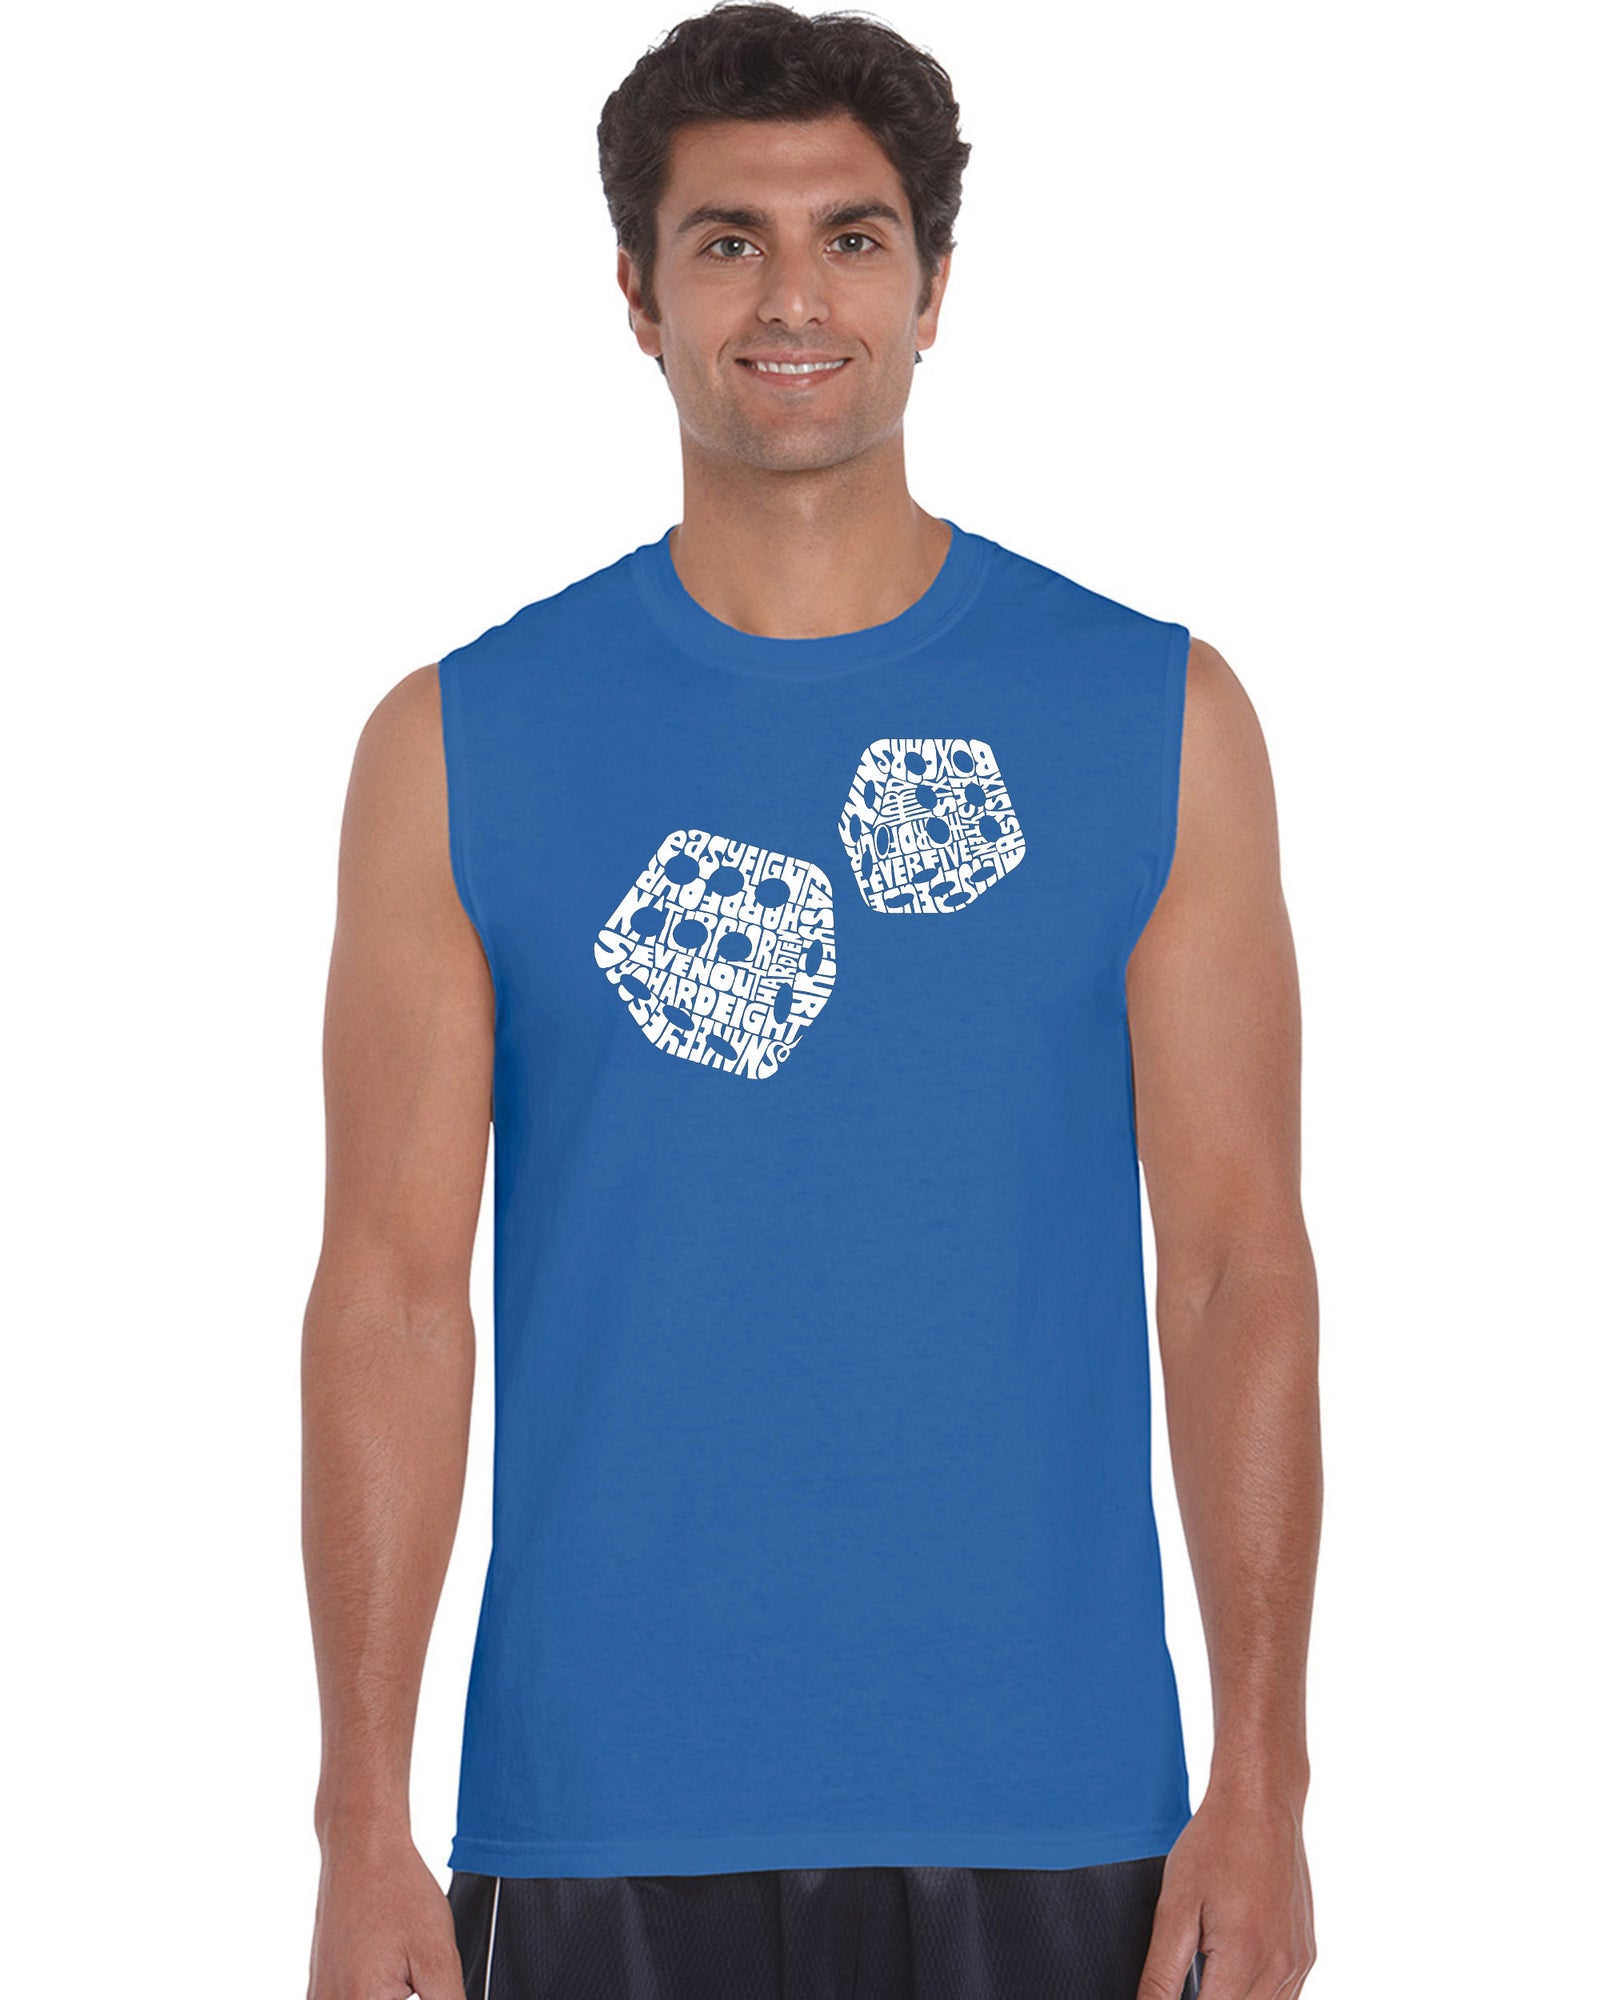 Men's Sleeveless T-shirt - DIFFERENT ROLLS THROWN IN THE GAME OF CRAPS